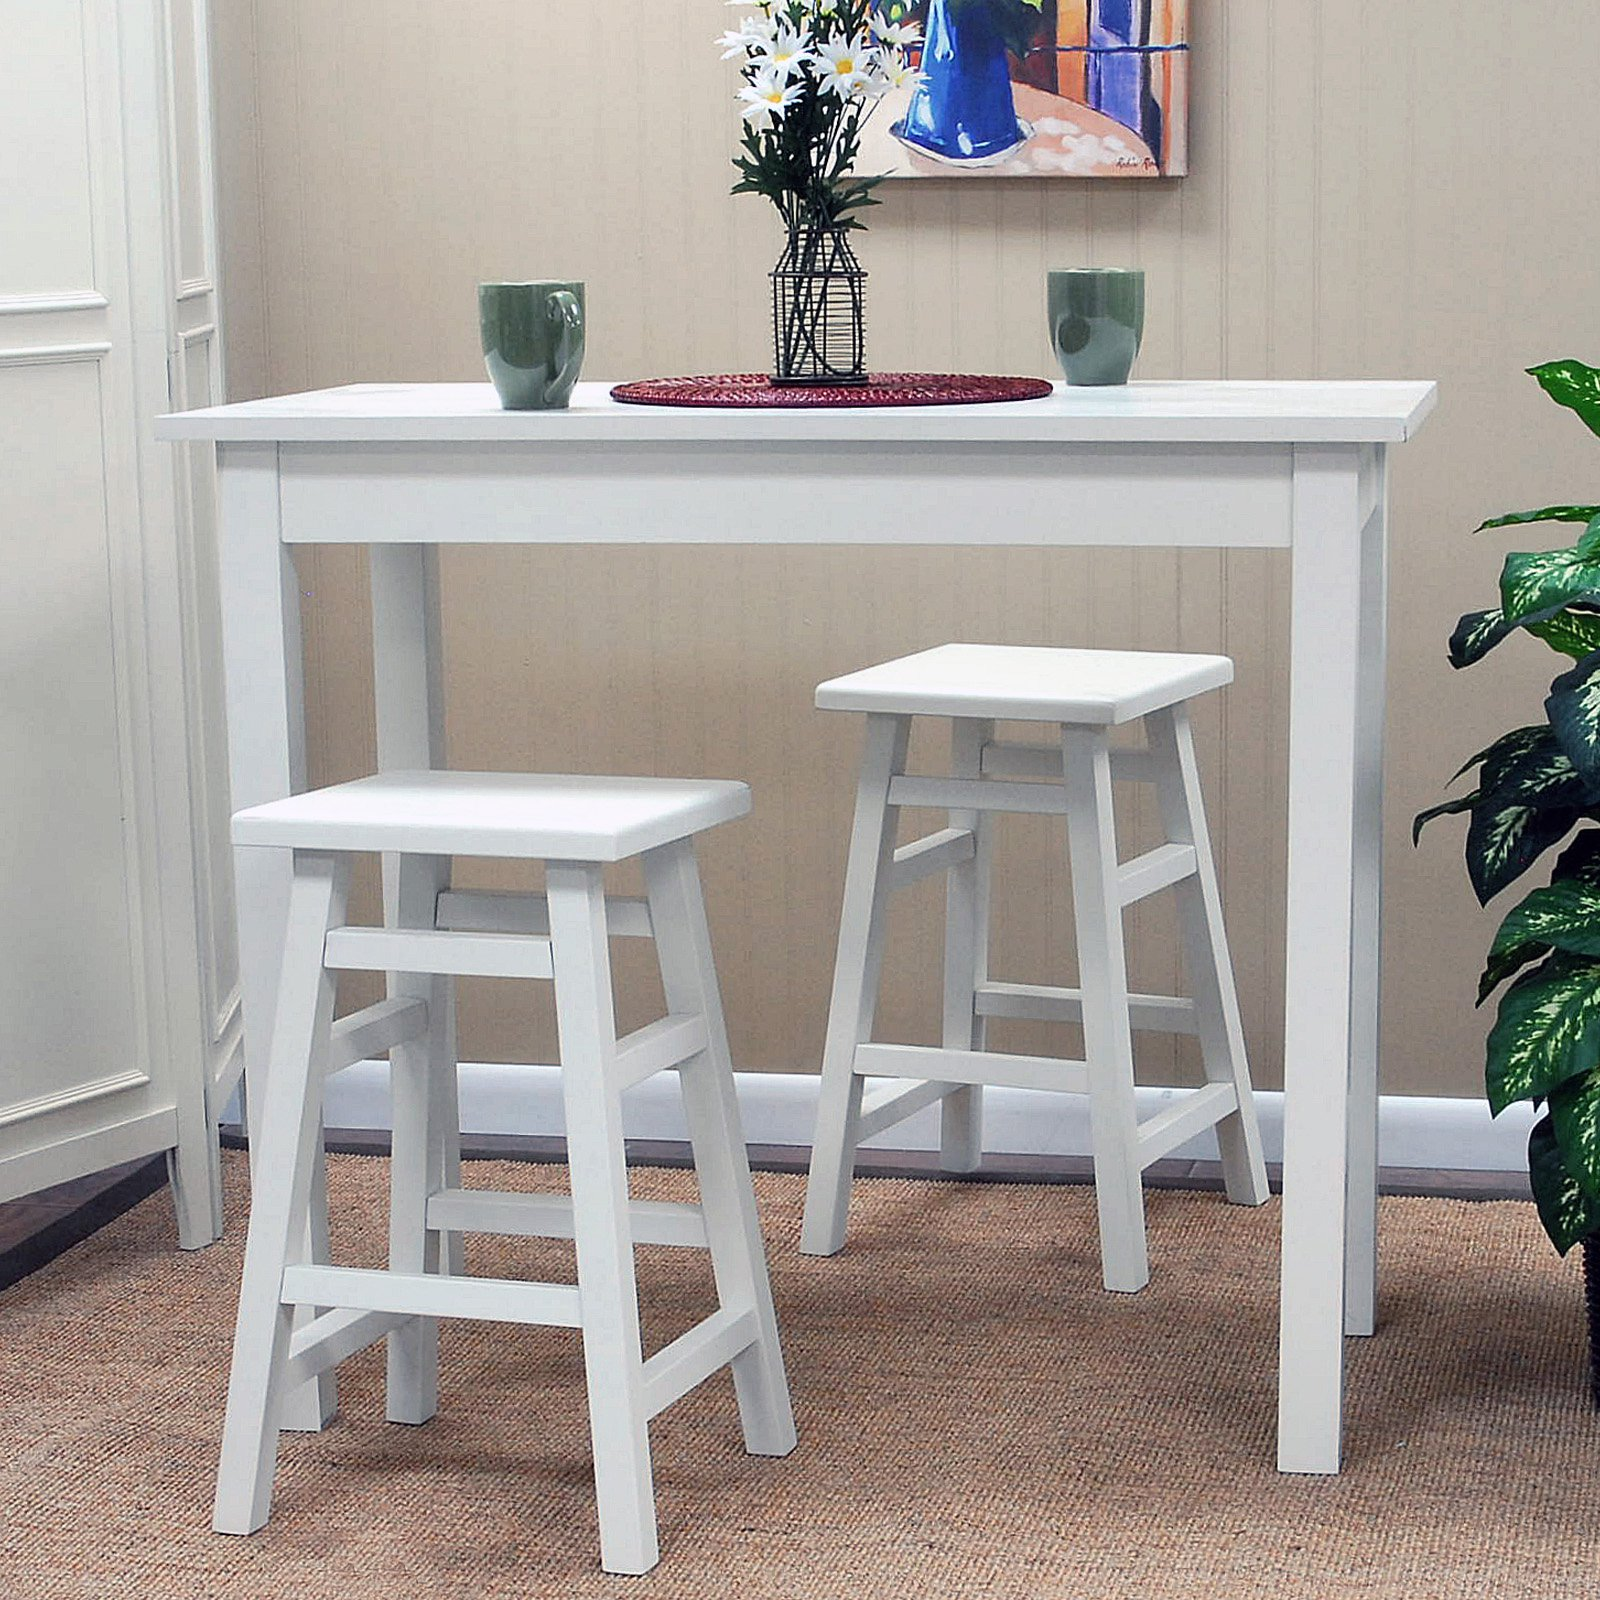 Carolina Tavern Pub Table - Antique White